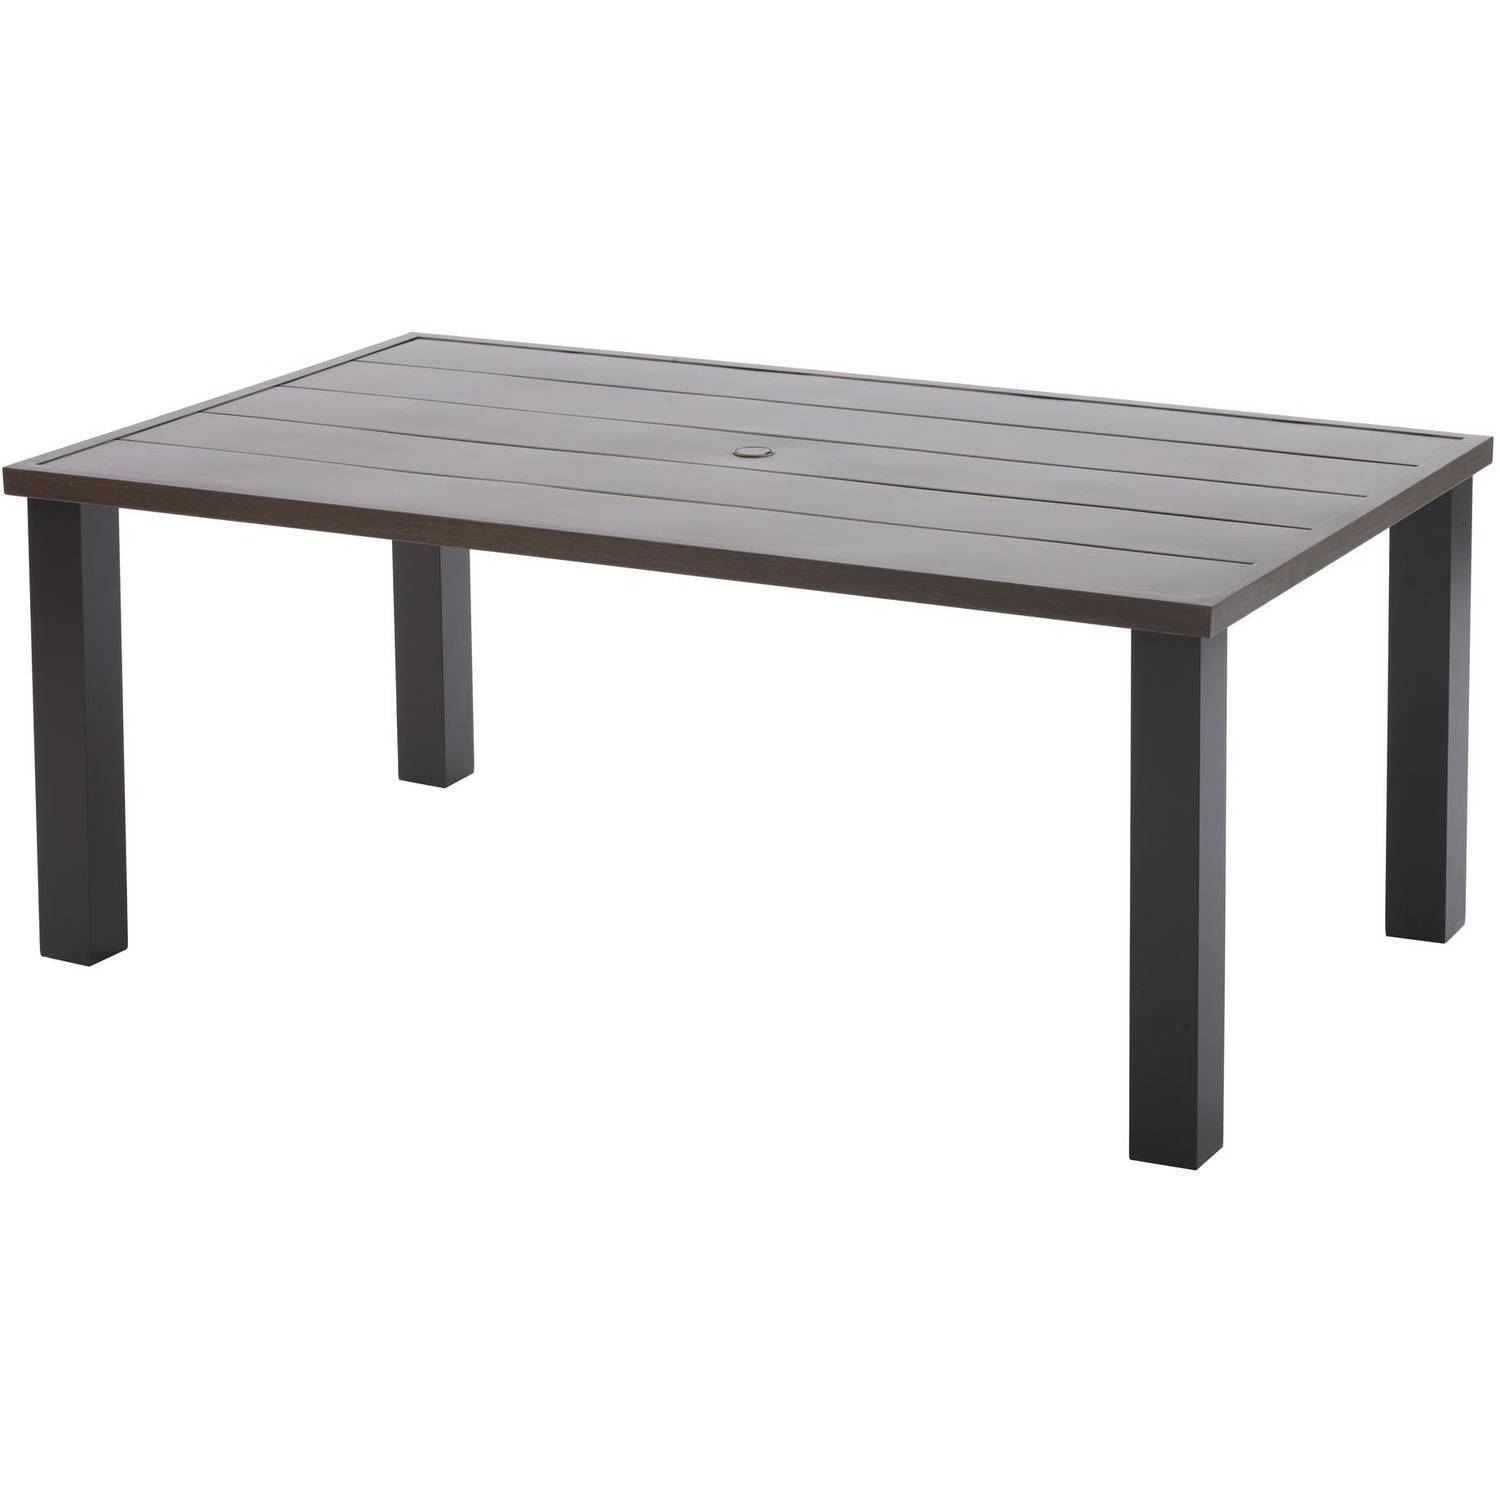 Patio Furniture - Walmart for Patio Sofa Tables (Image 22 of 30)